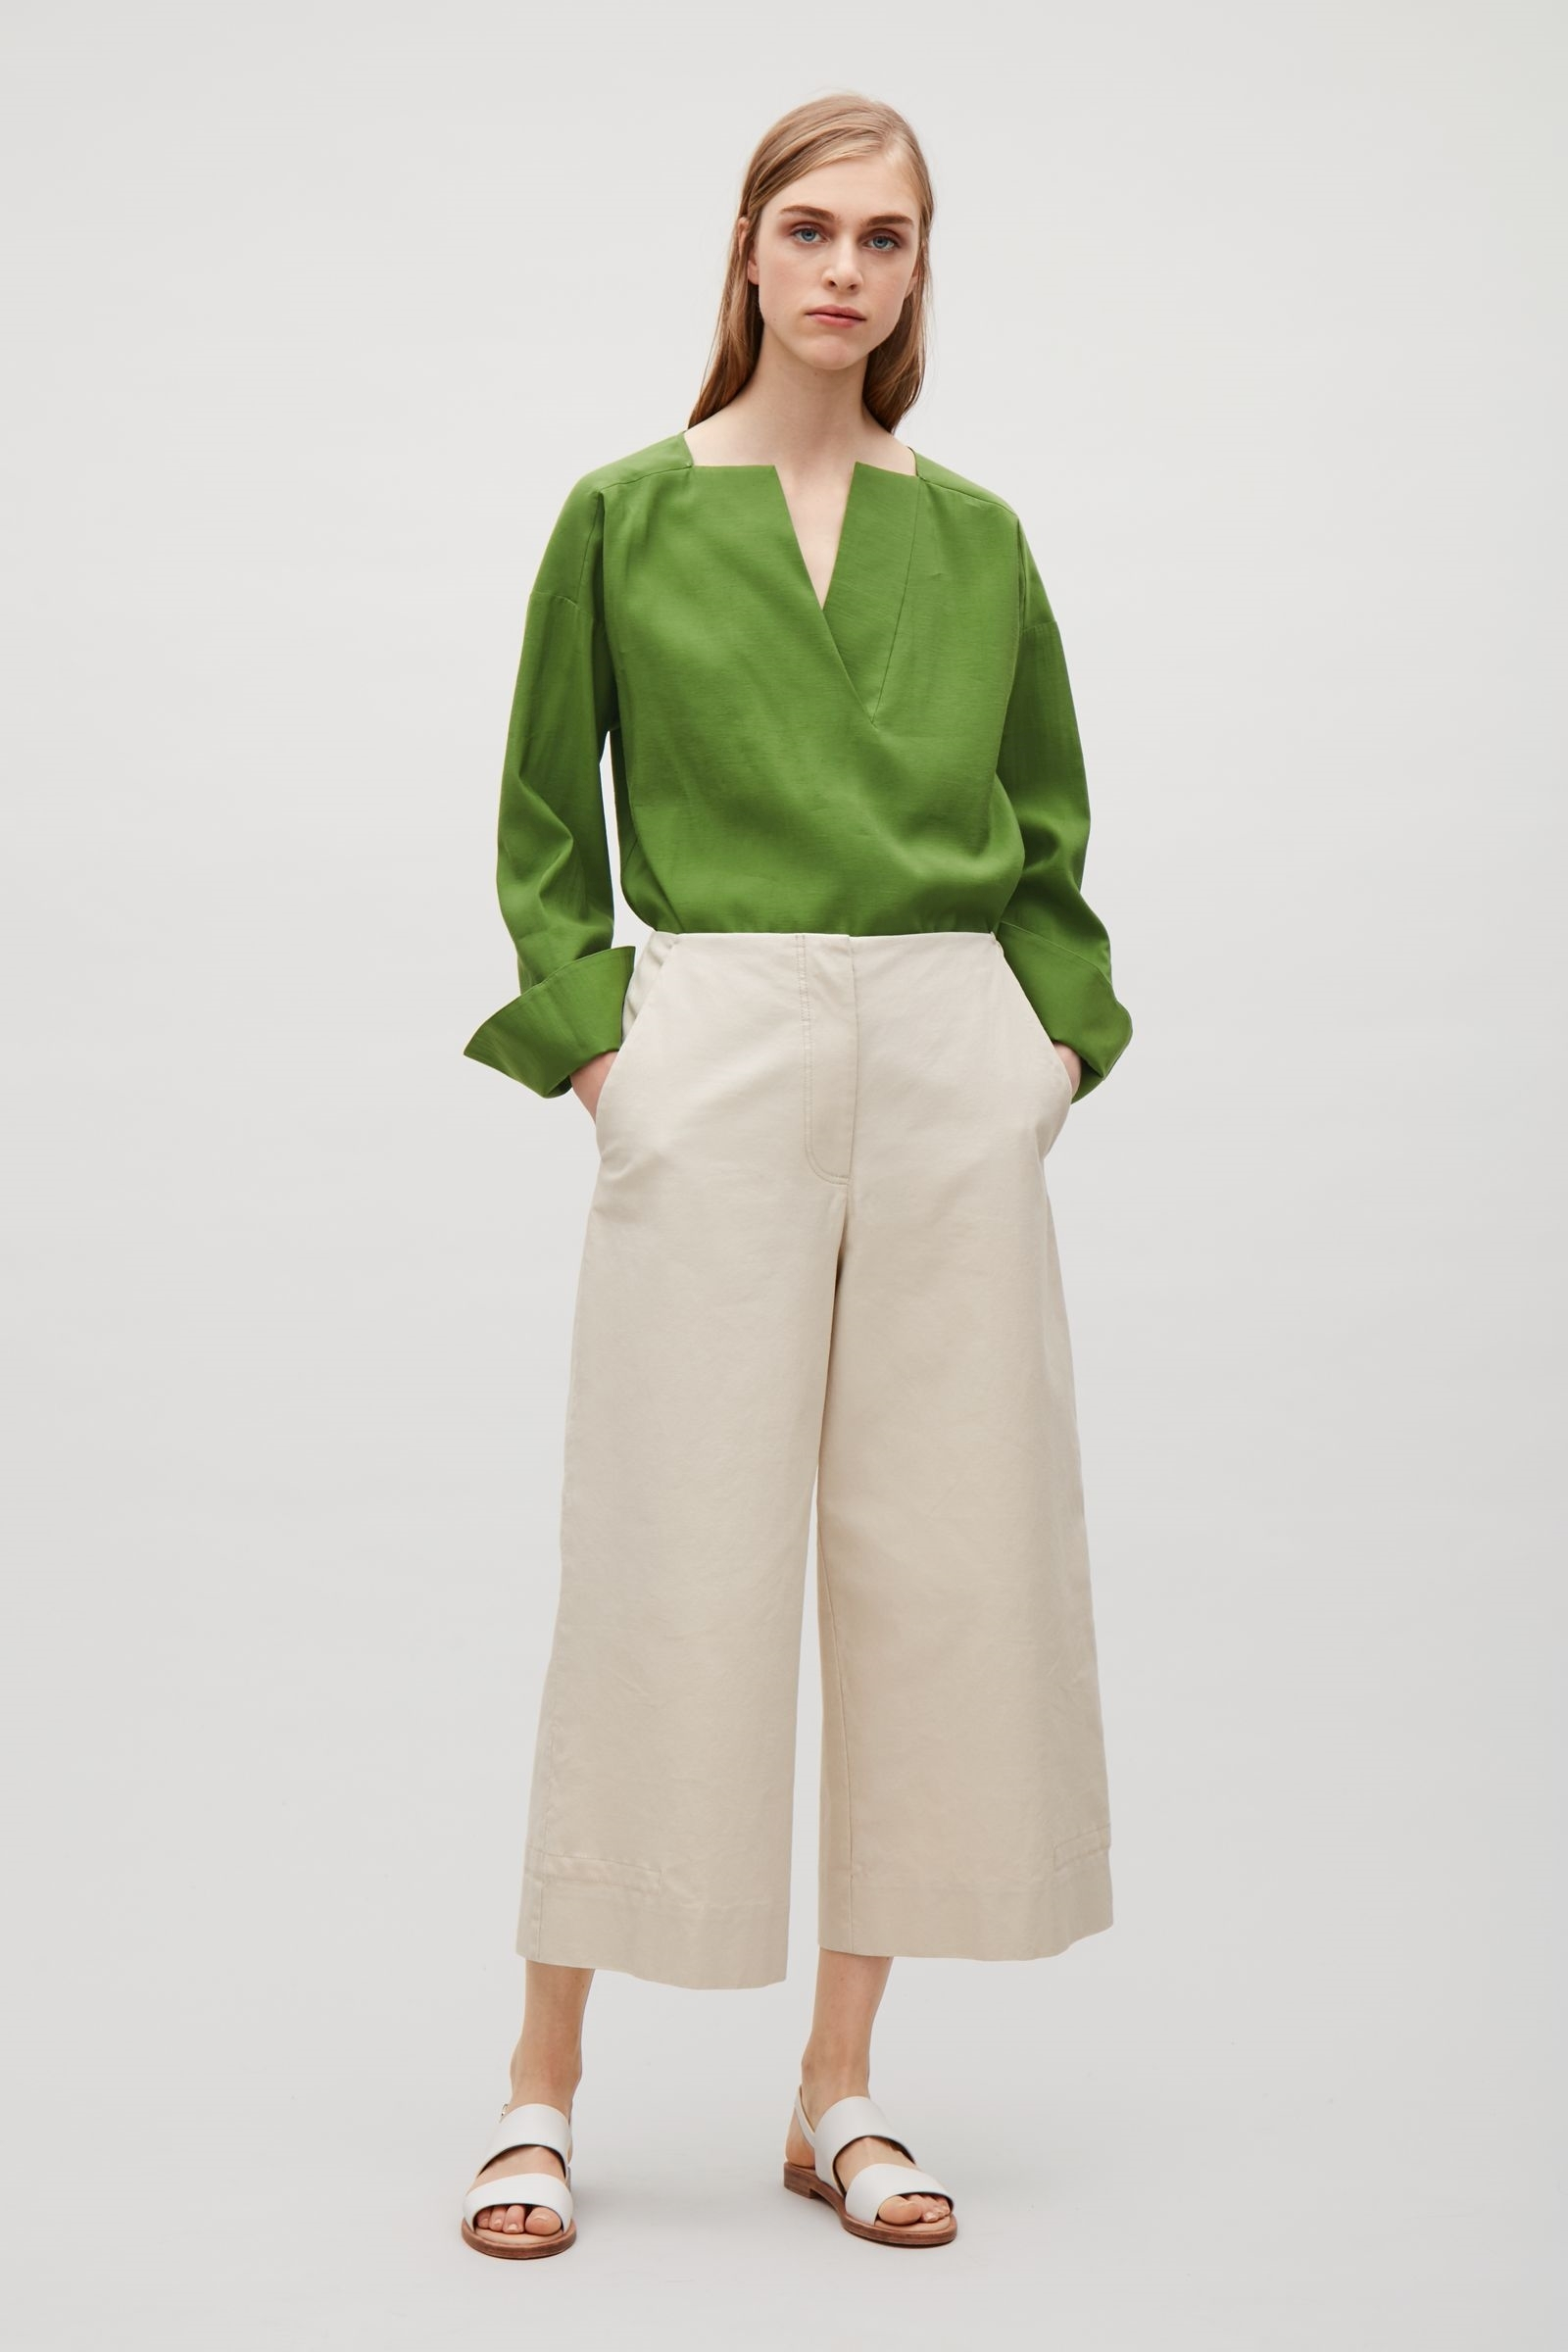 Hot Weather Dressing Cropped Pants Can Look Chic That S